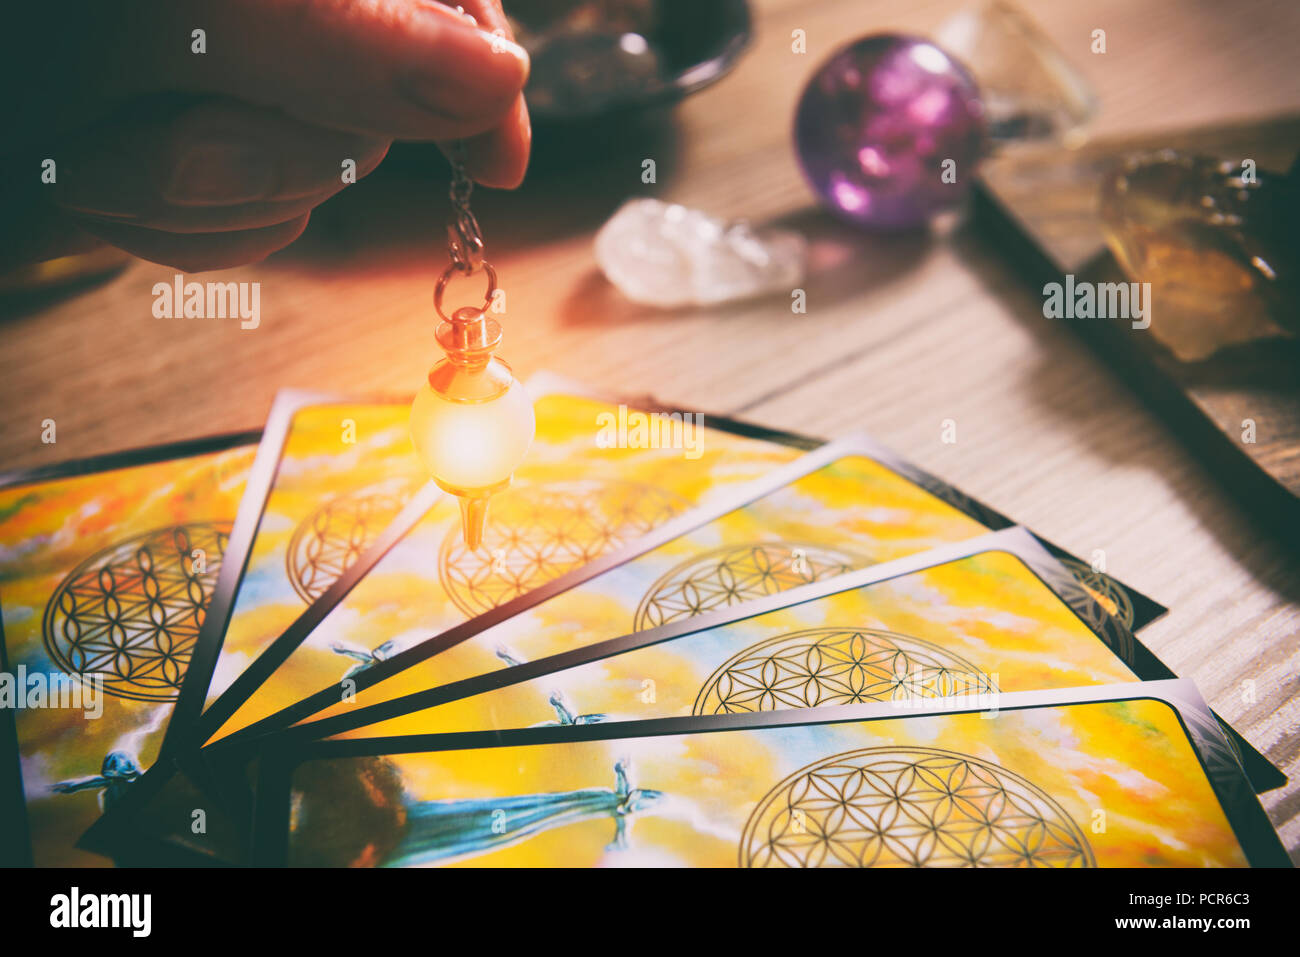 Tarot cards dowsing tool in hand and crystals as a concept of psychic advisor or ways of divination - Stock Image